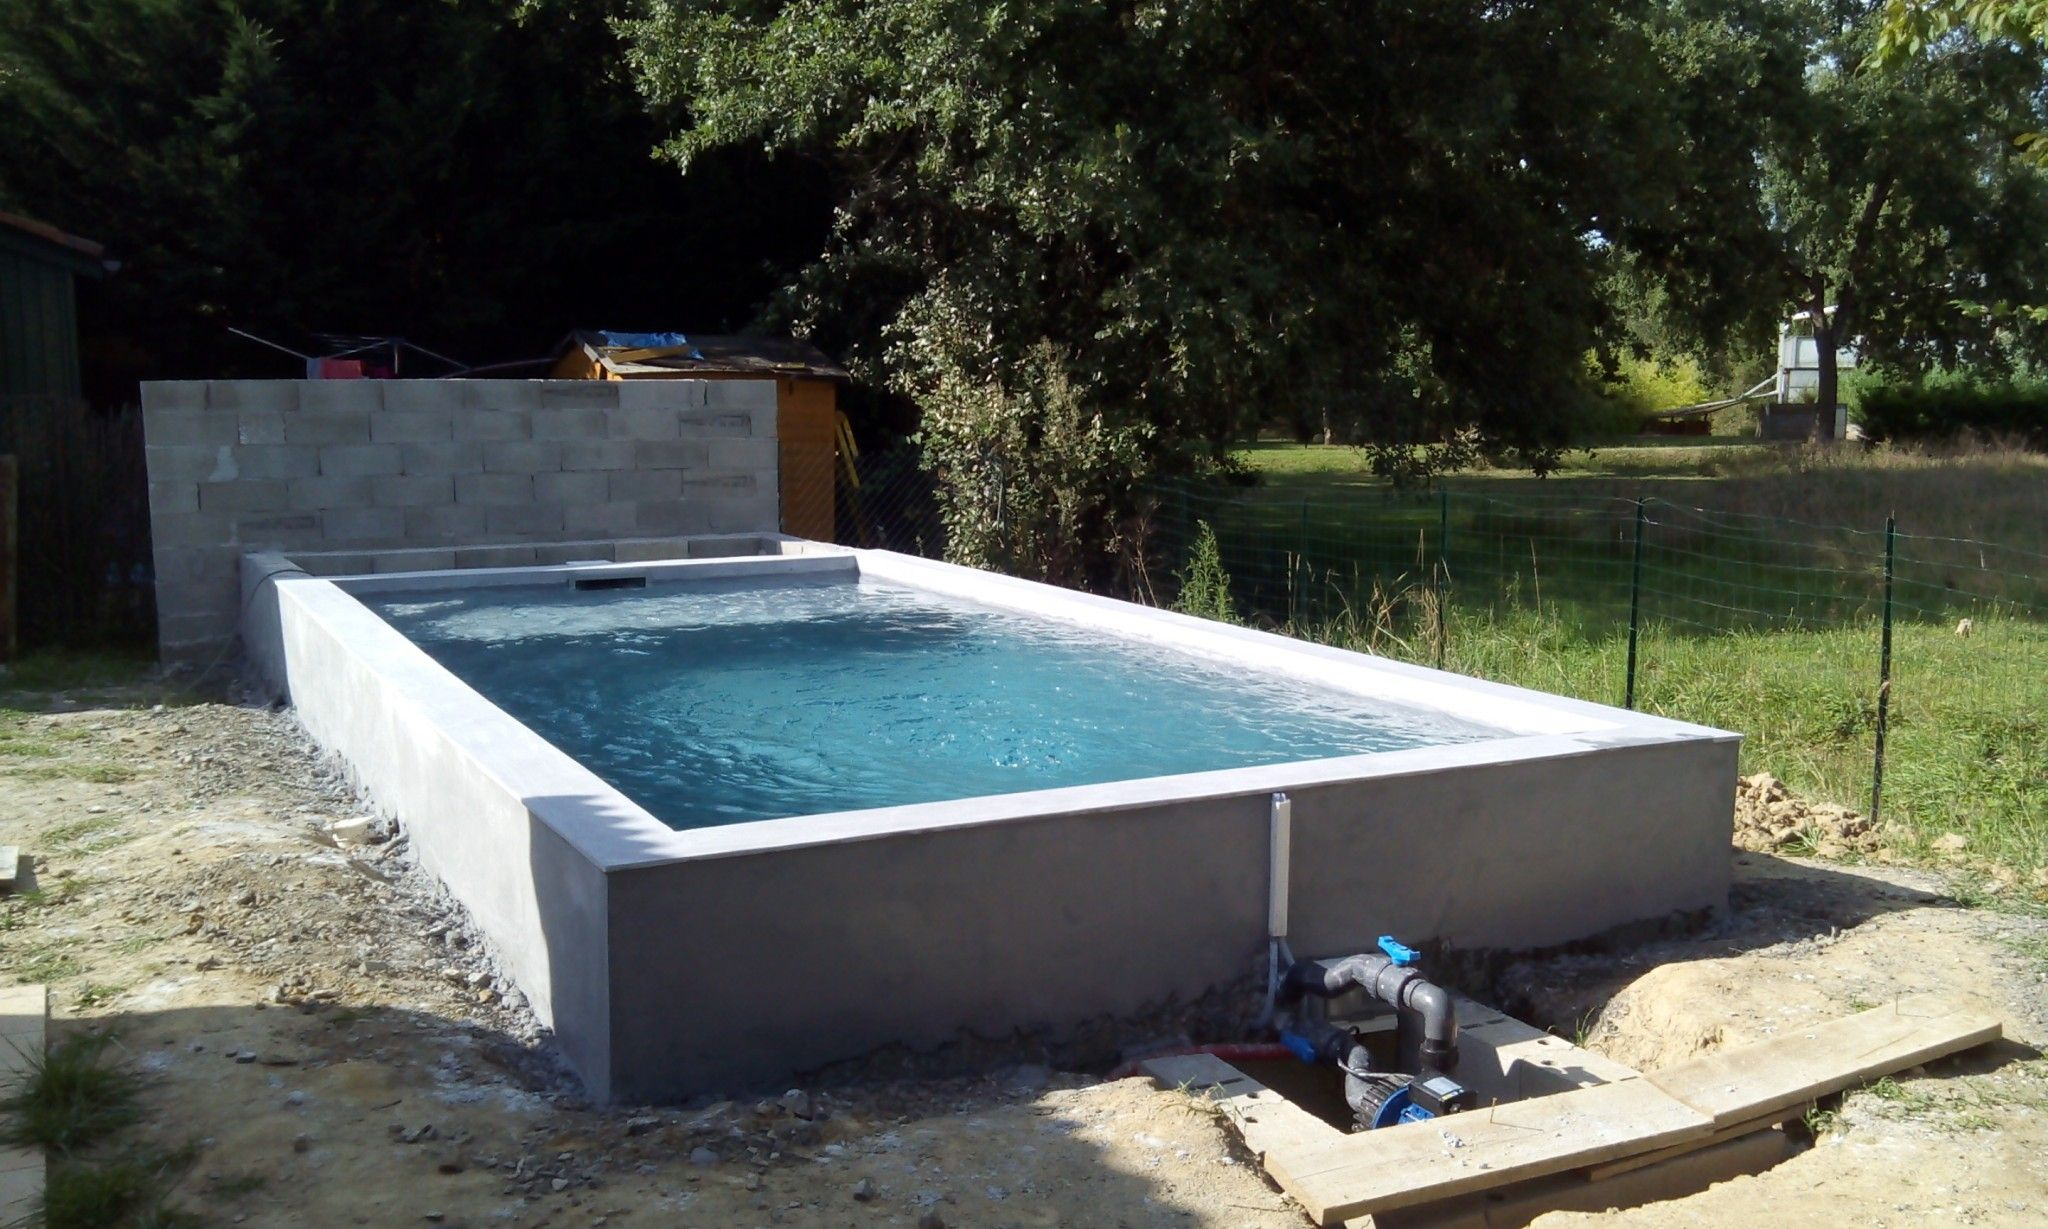 Chantier mini piscine mini piscine small pool en 2019 mini pool piscine hors sol et pools - Construire une piscine hors sol en beton ...